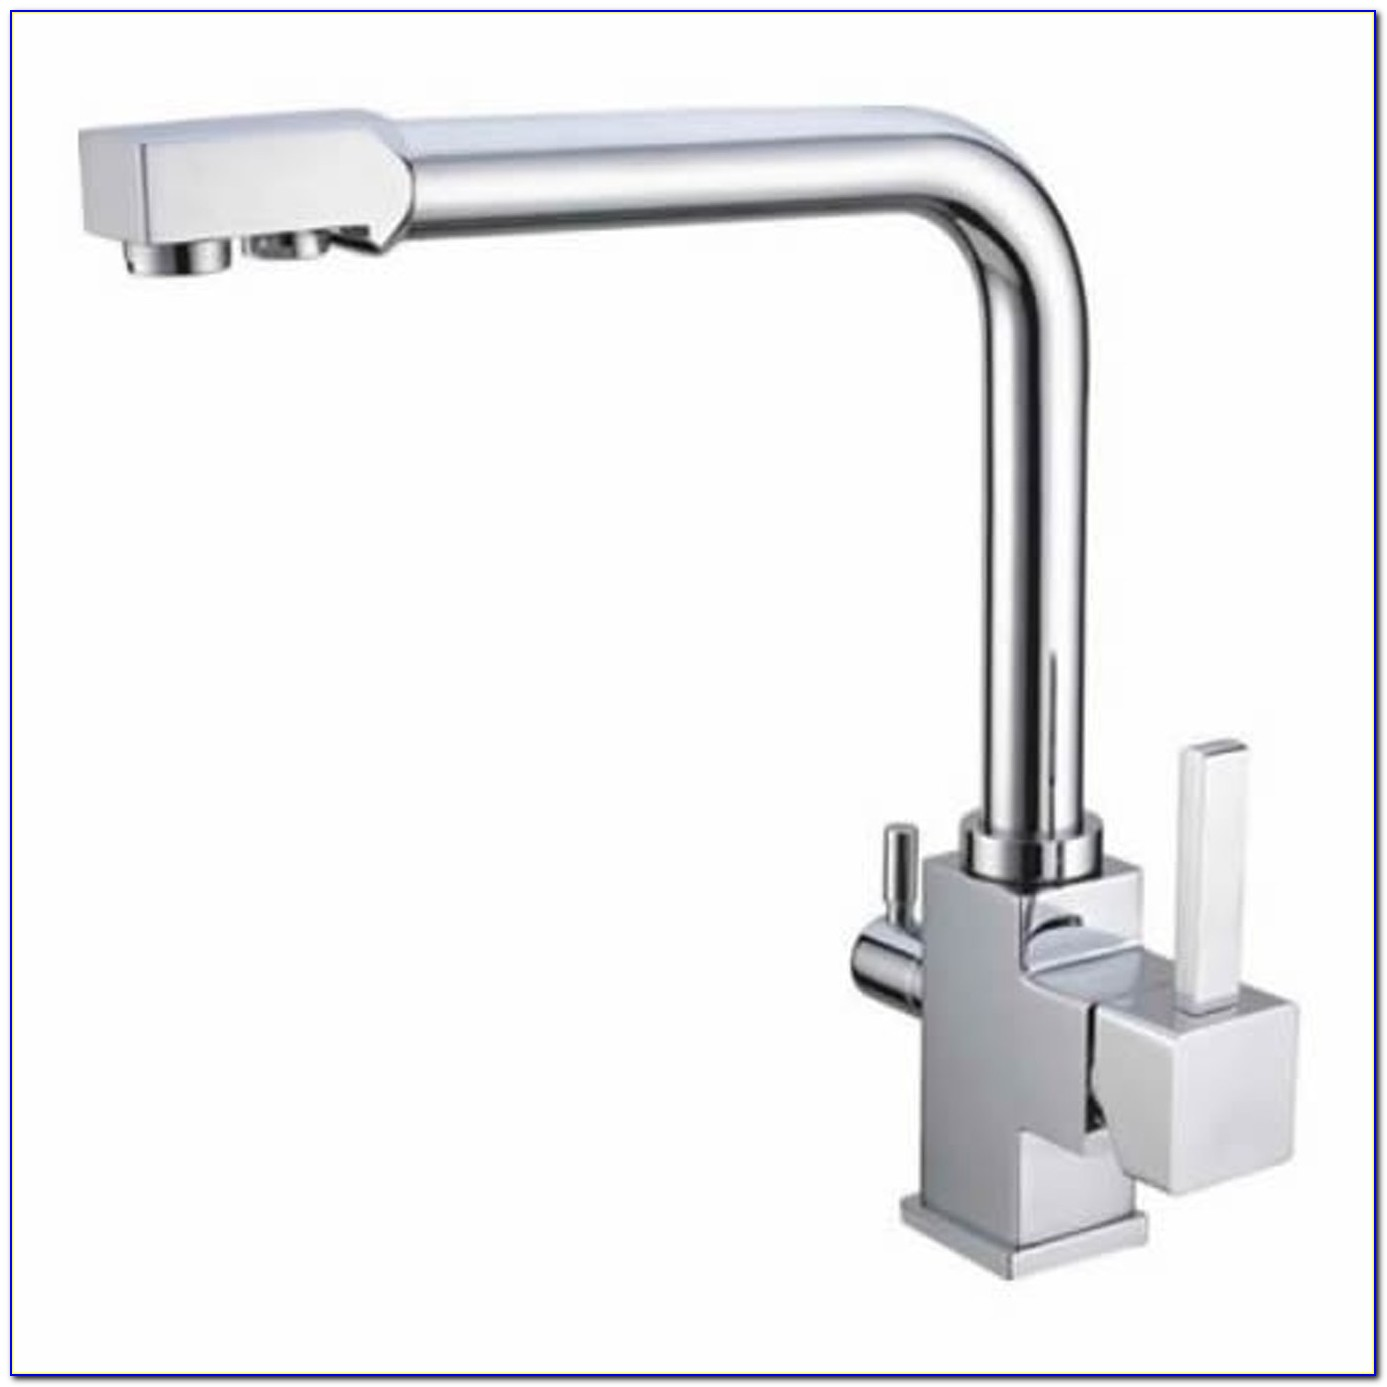 Faucet Mounted Water Filtration - Faucet : Home Design Ideas ...